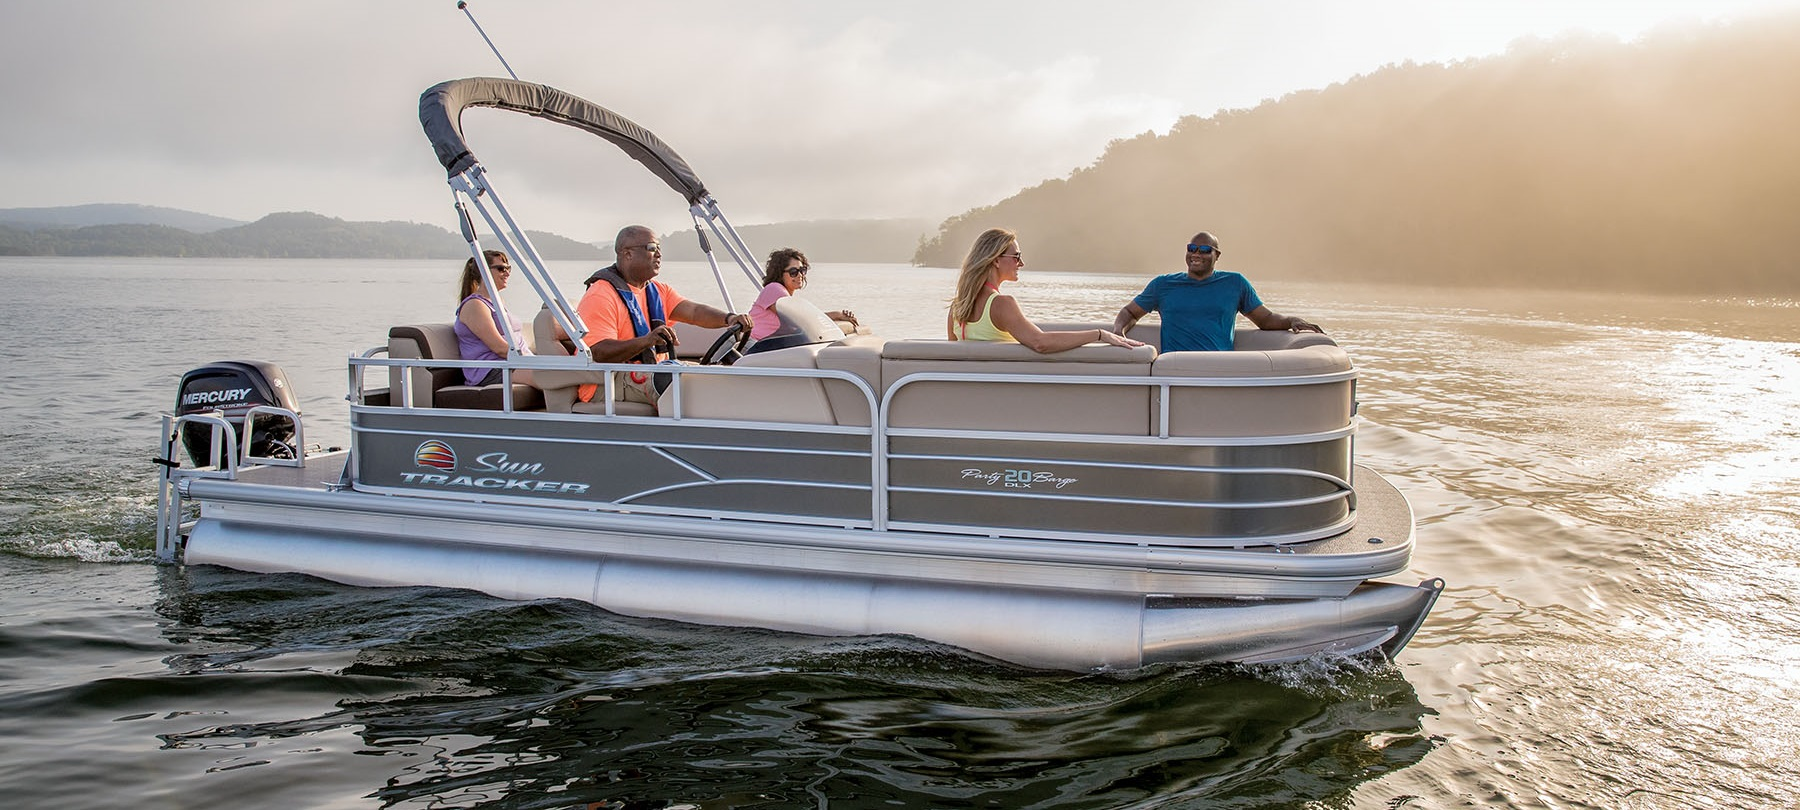 _2018_SUN-TRACKER_112018_Recreational-Pontoons_2452018_PARTY-BARGE-20-DLX_4234_Product-Beauty_1326546_STPB20DLX_R018_18